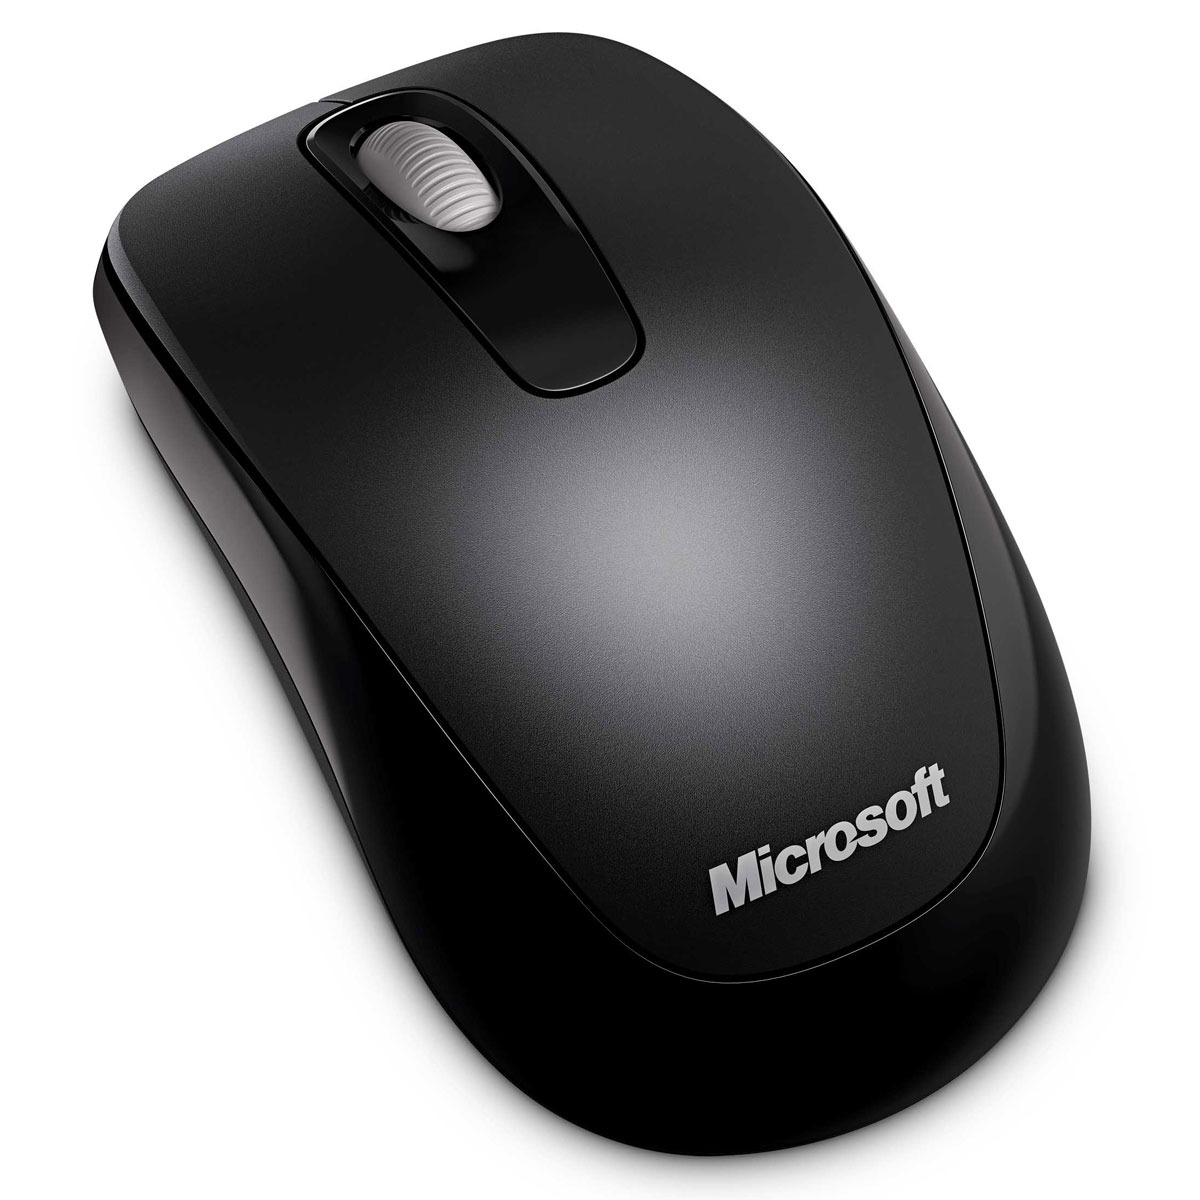 microsoft wireless mobile mouse 1000 noir souris pc microsoft sur. Black Bedroom Furniture Sets. Home Design Ideas